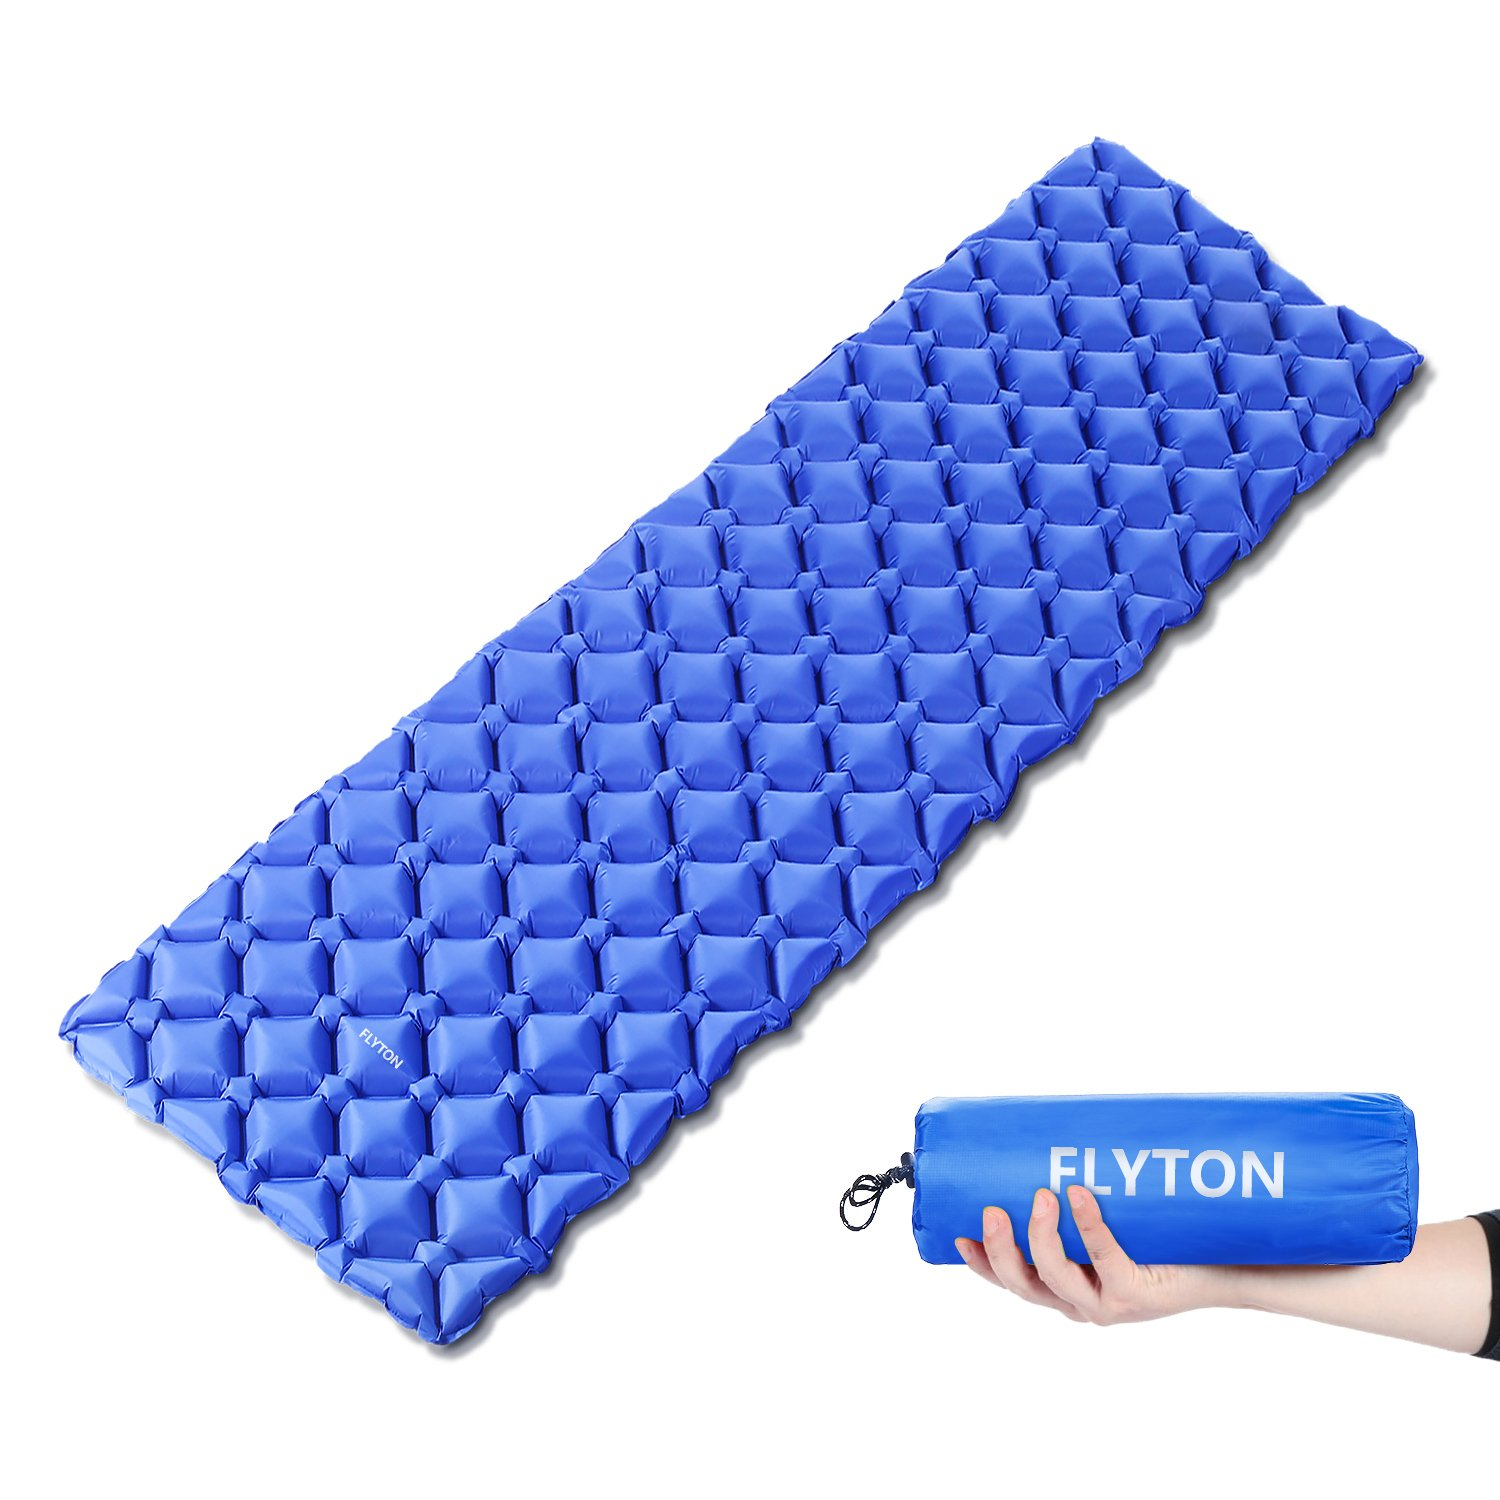 Amazon.com: FLYTON - Colchón hinchable ultraligero para ...